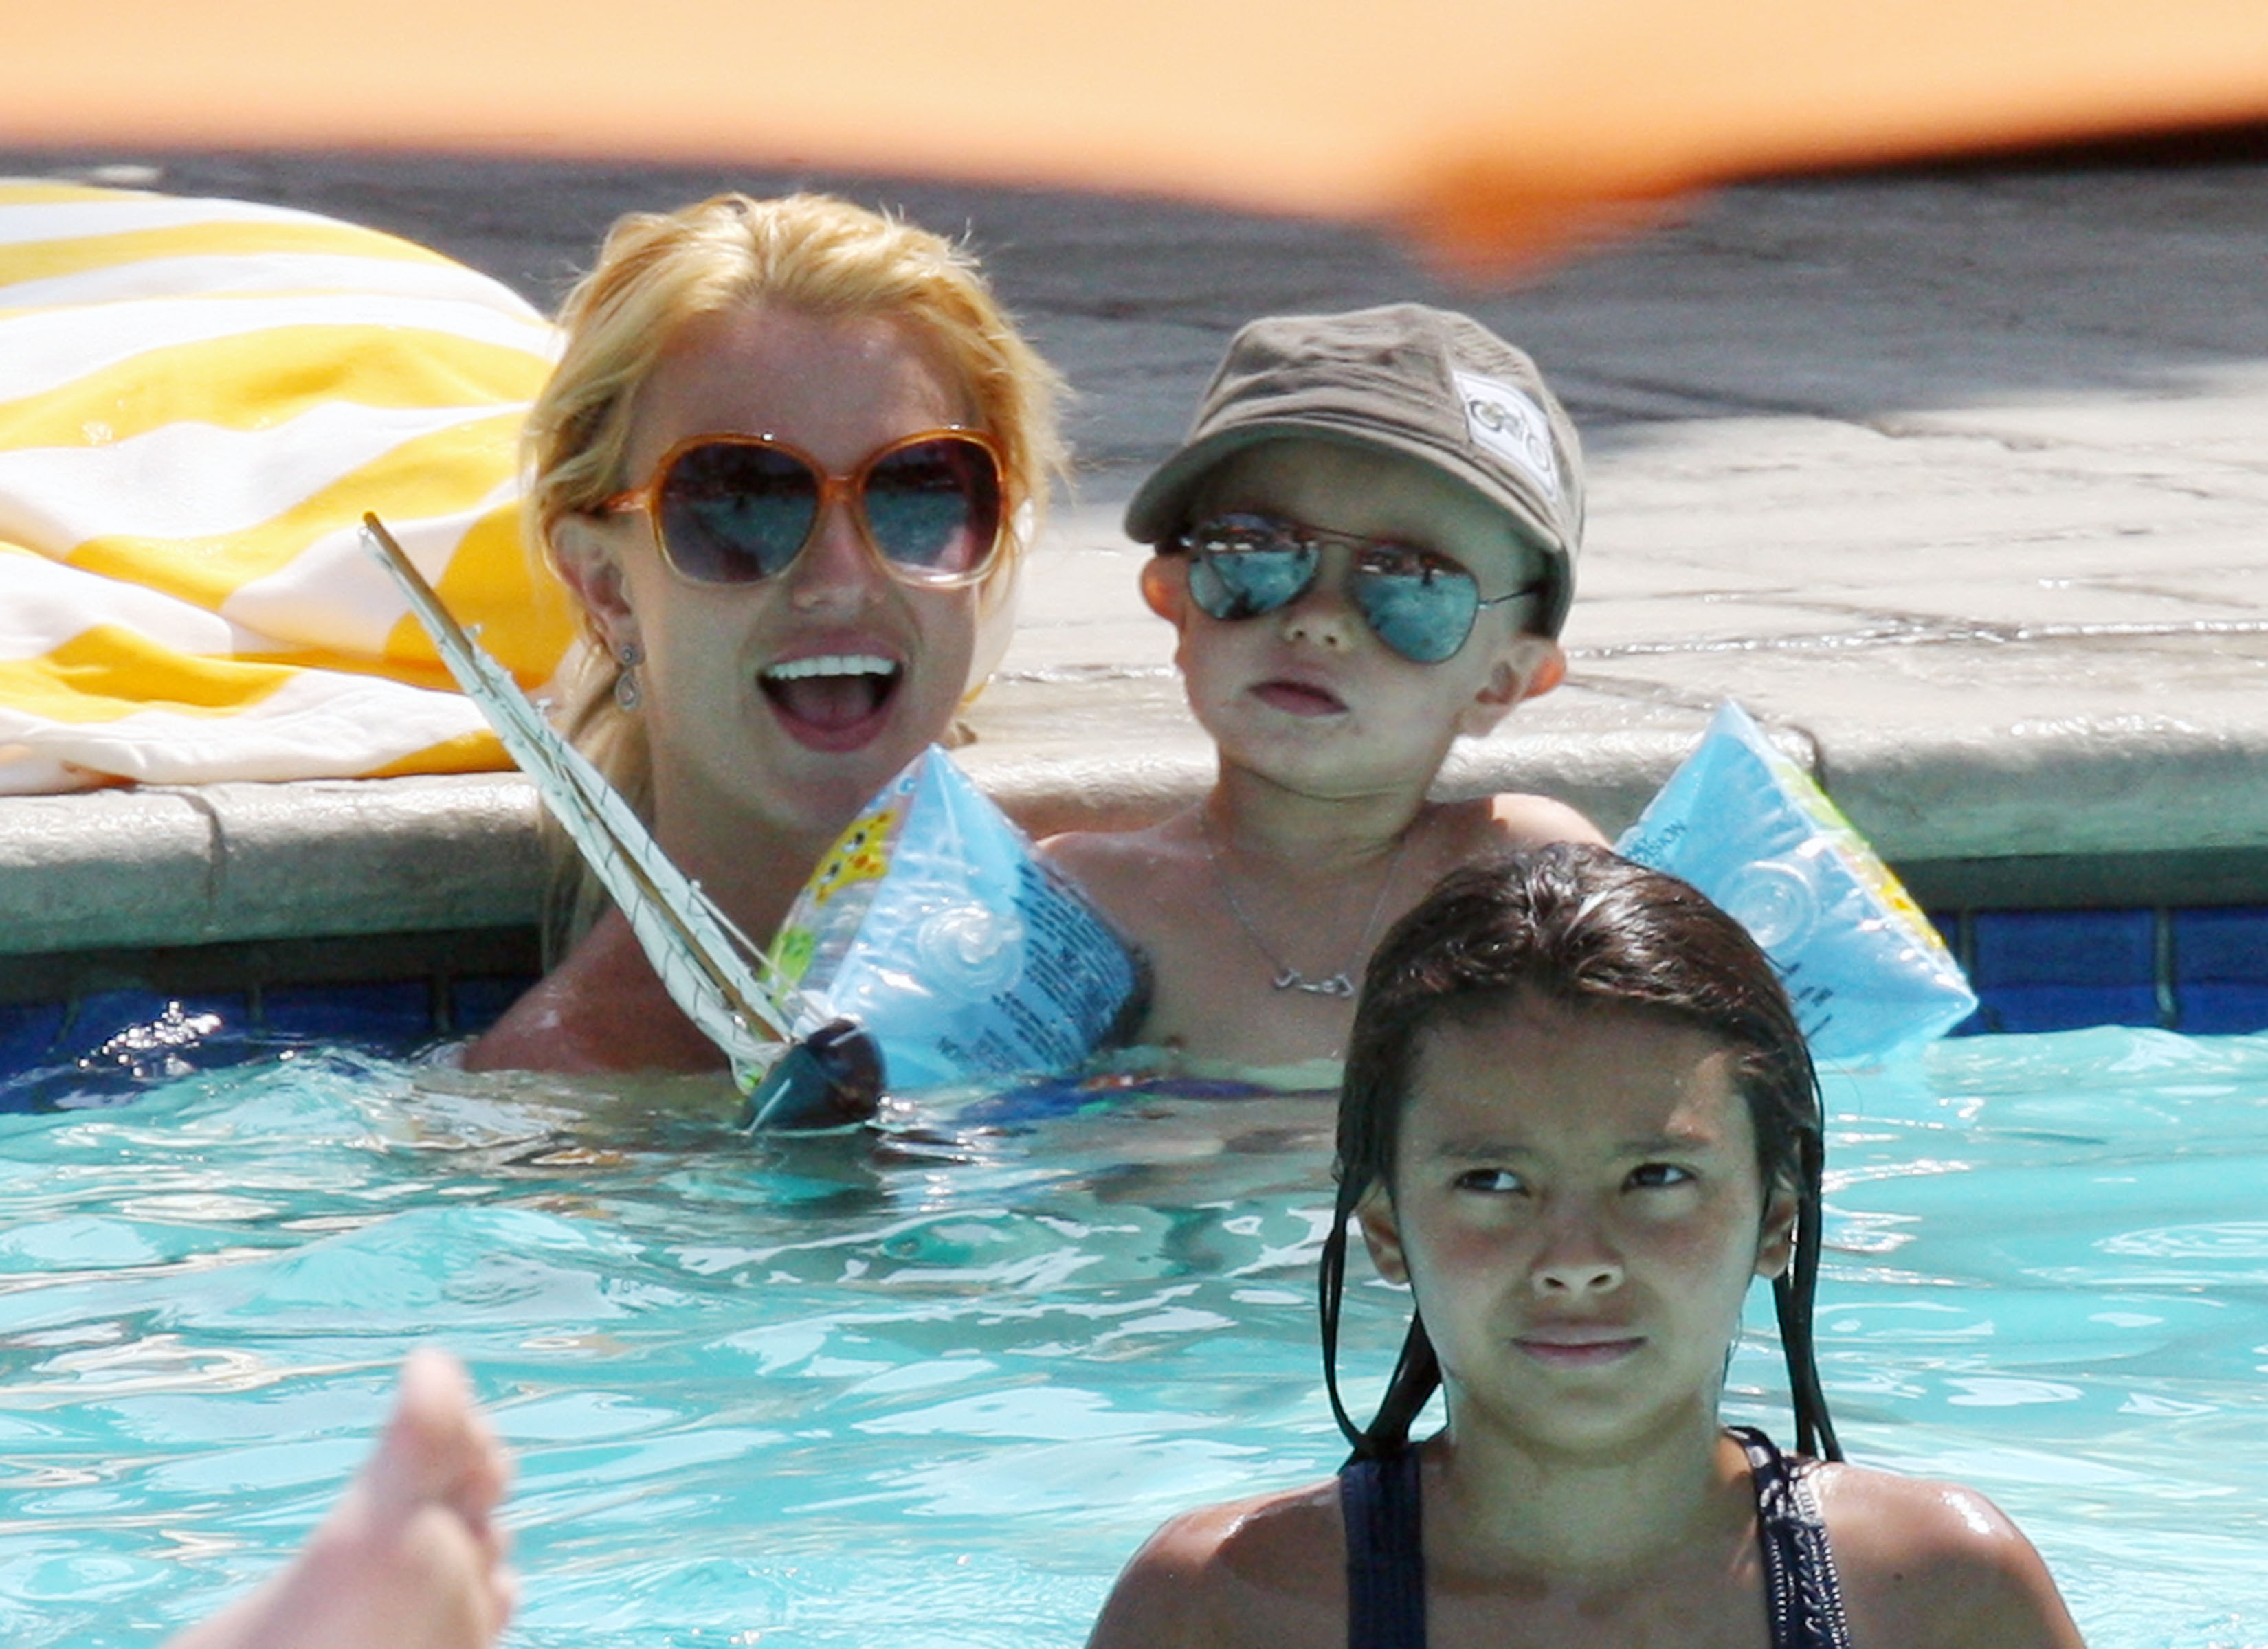 Britney Spears Hangs Out Poolside With Her Boys Growing